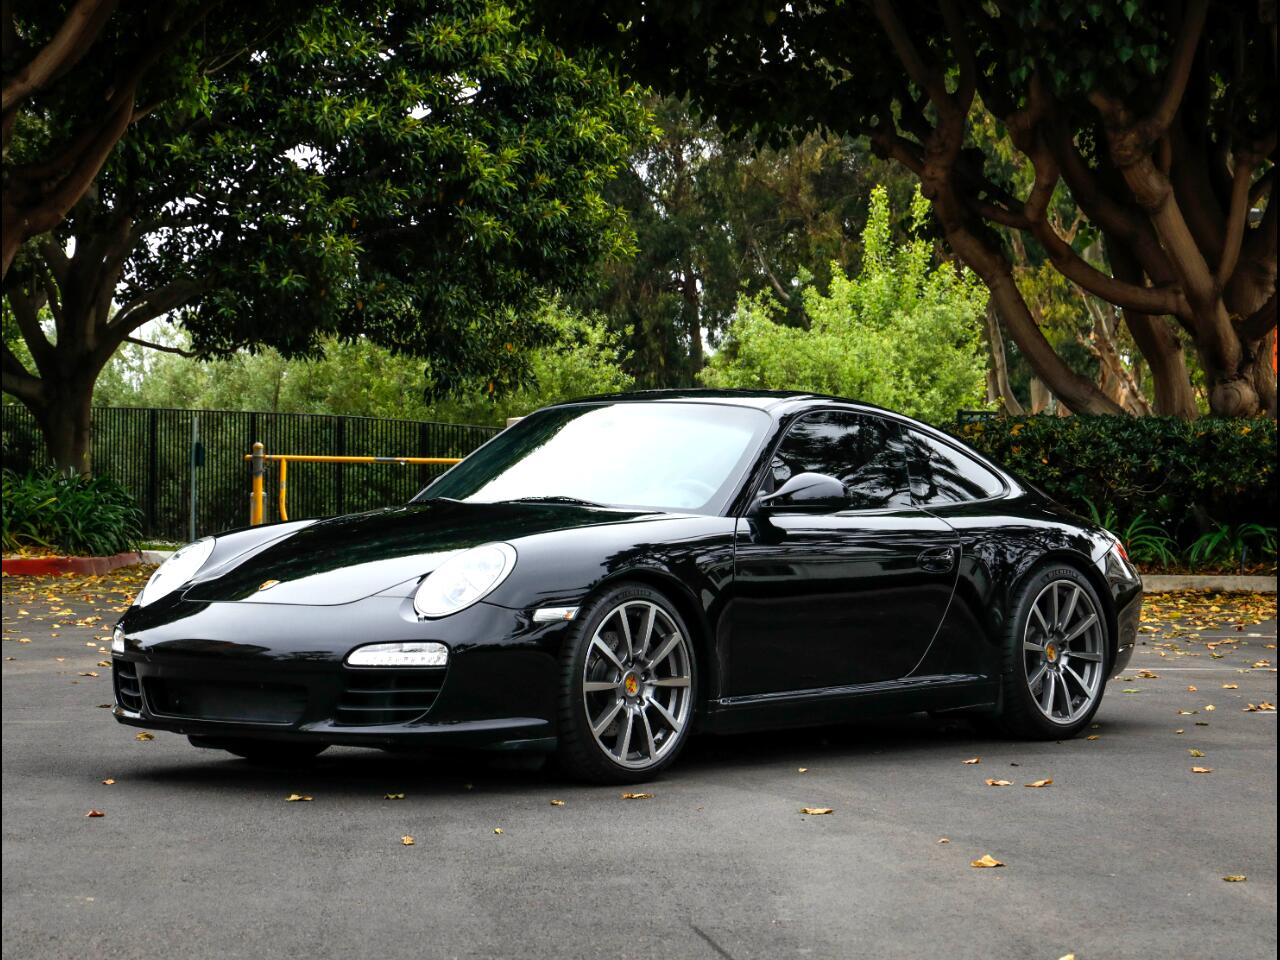 2009 Porsche 911 997.2 Carrera Coupe